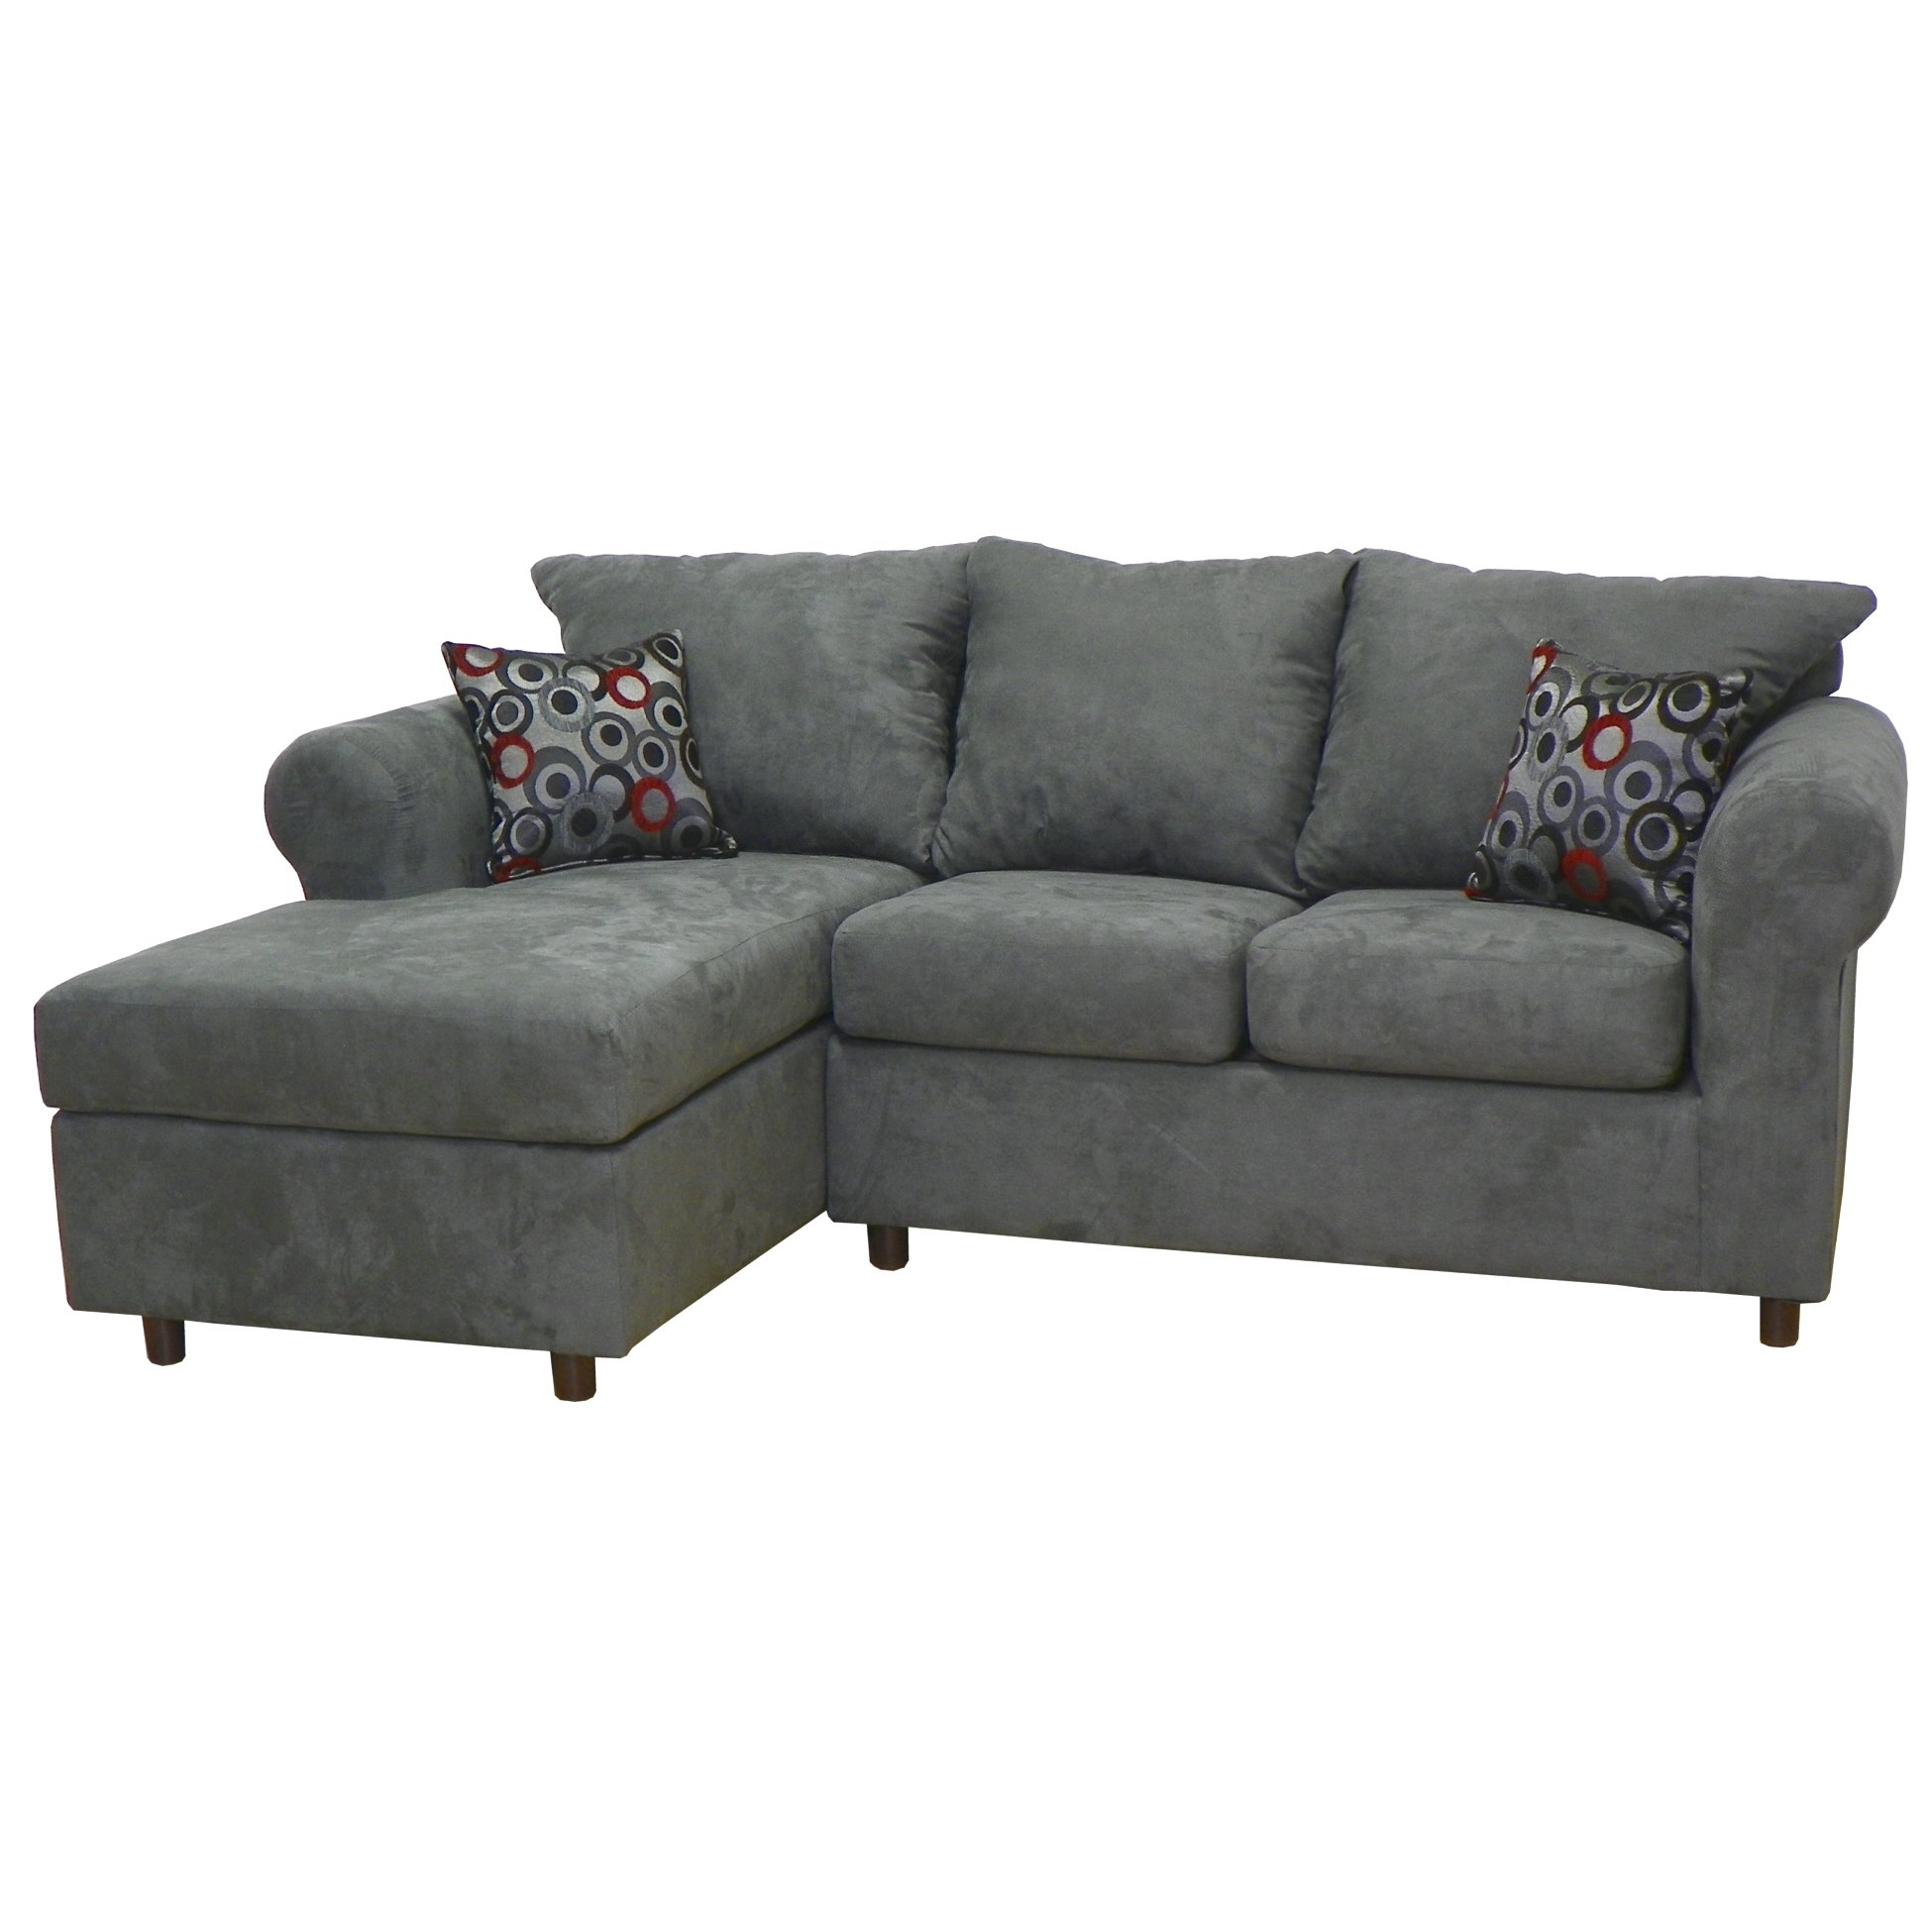 Sectional Sofas Youll Love Wayfair Within 45 Degree Sectional Sofa (Image 13 of 15)